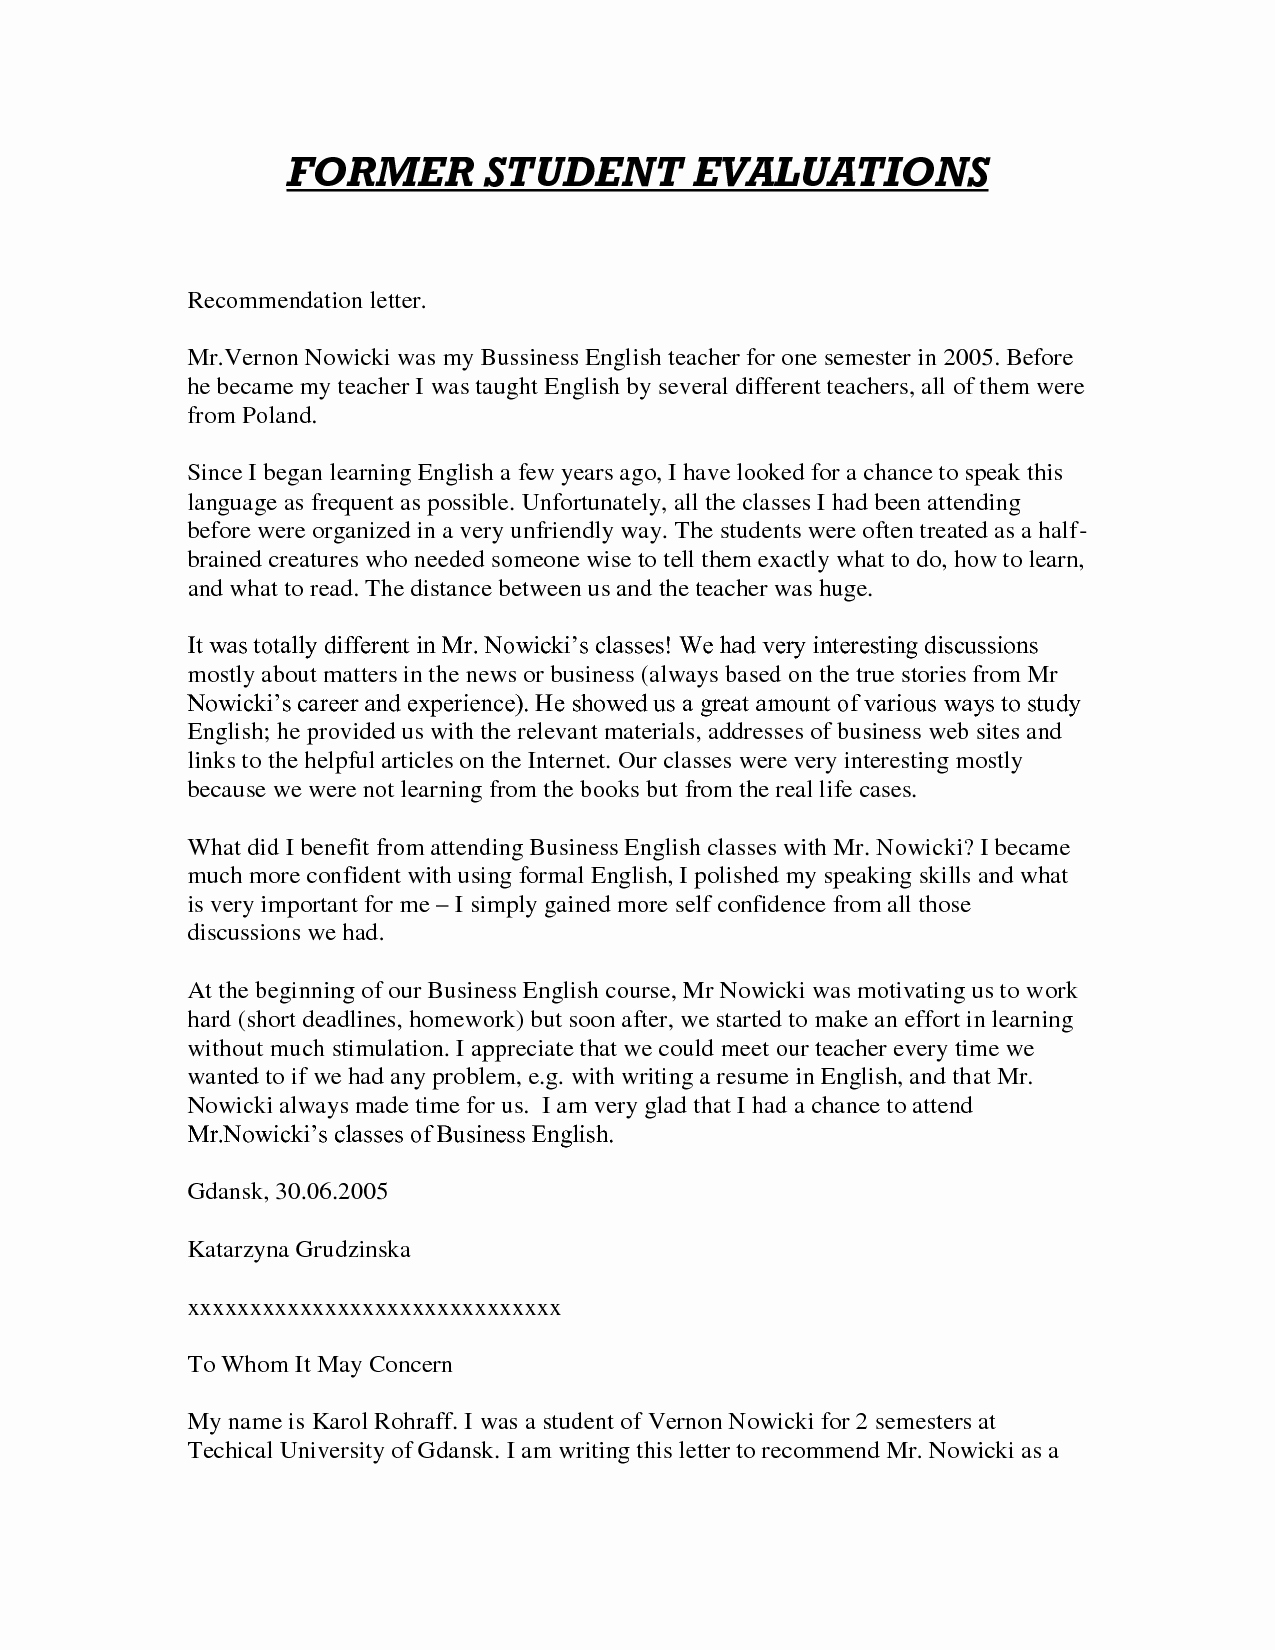 Reference Letter Examples for Teachers Best Of Sample Letter Of Re Mendation for Teacher